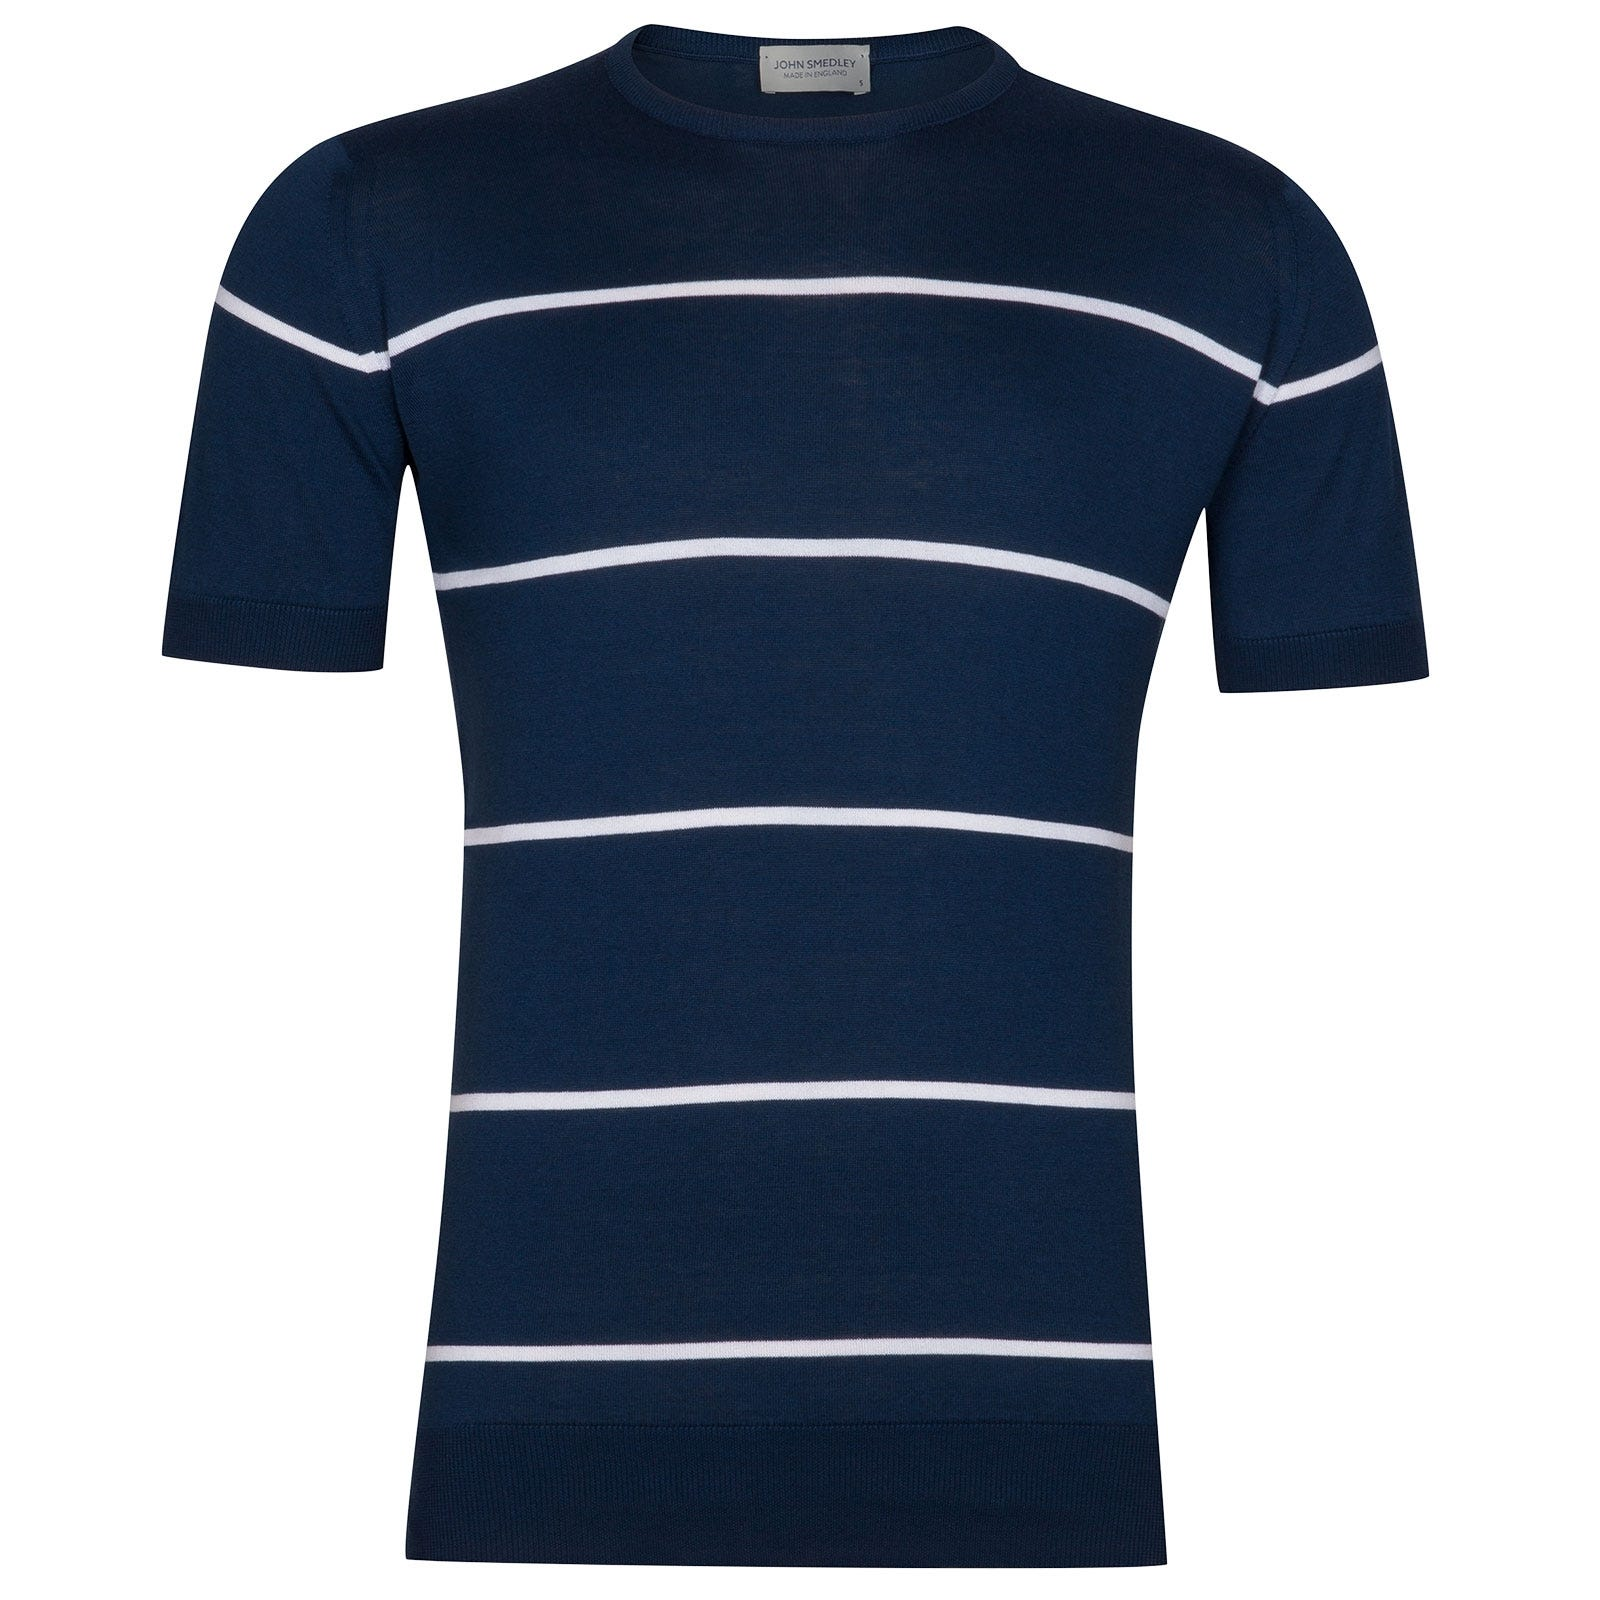 John Smedley Barlby Sea Island Cotton T-Shirt in Indigo-XL